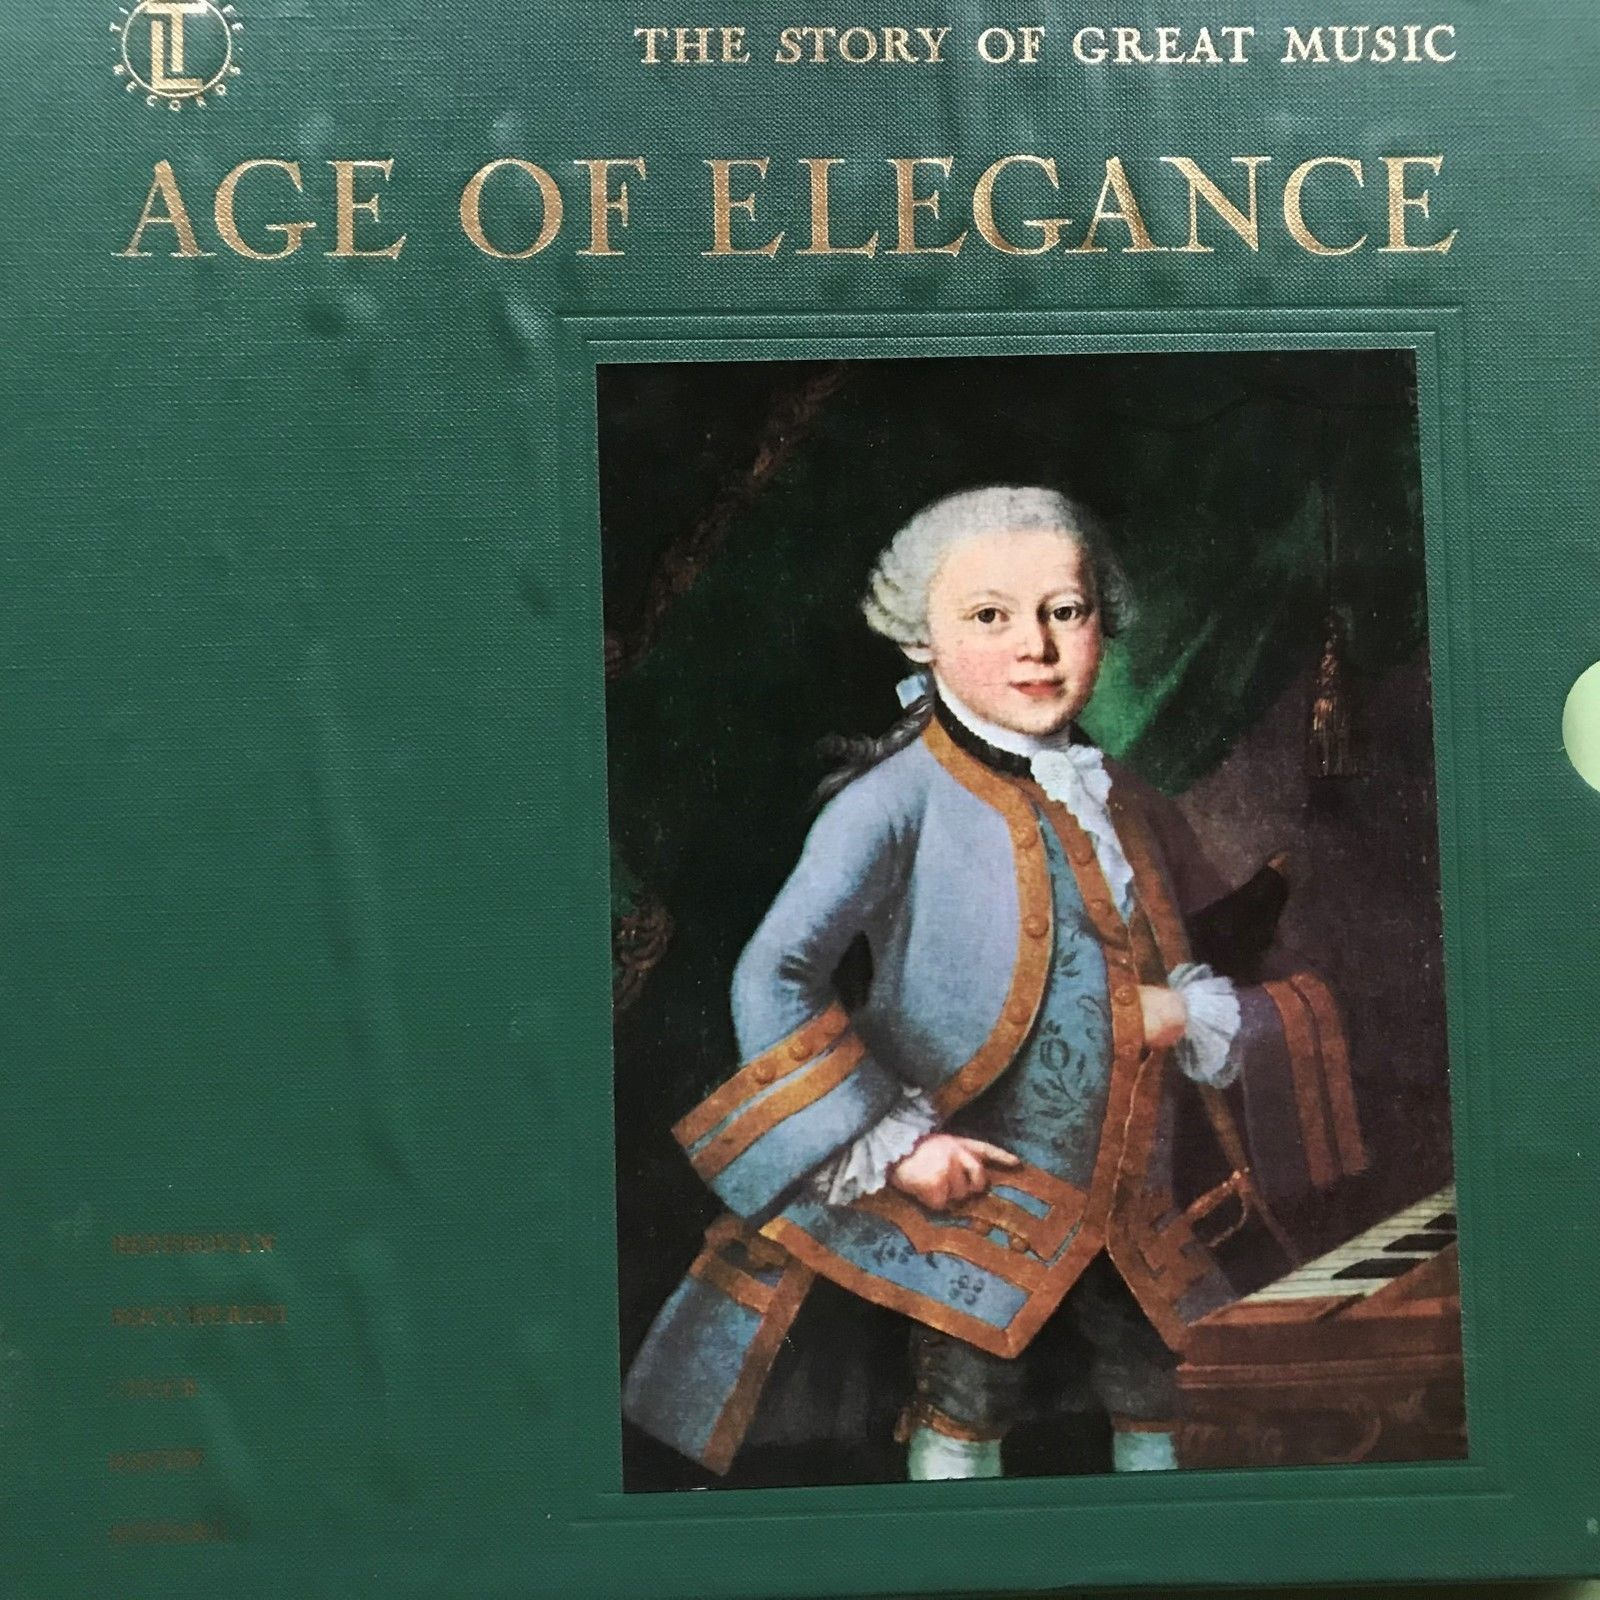 Primary image for Age of Elegance Time Life Story Great Music 4 Record Set book listen guide 141